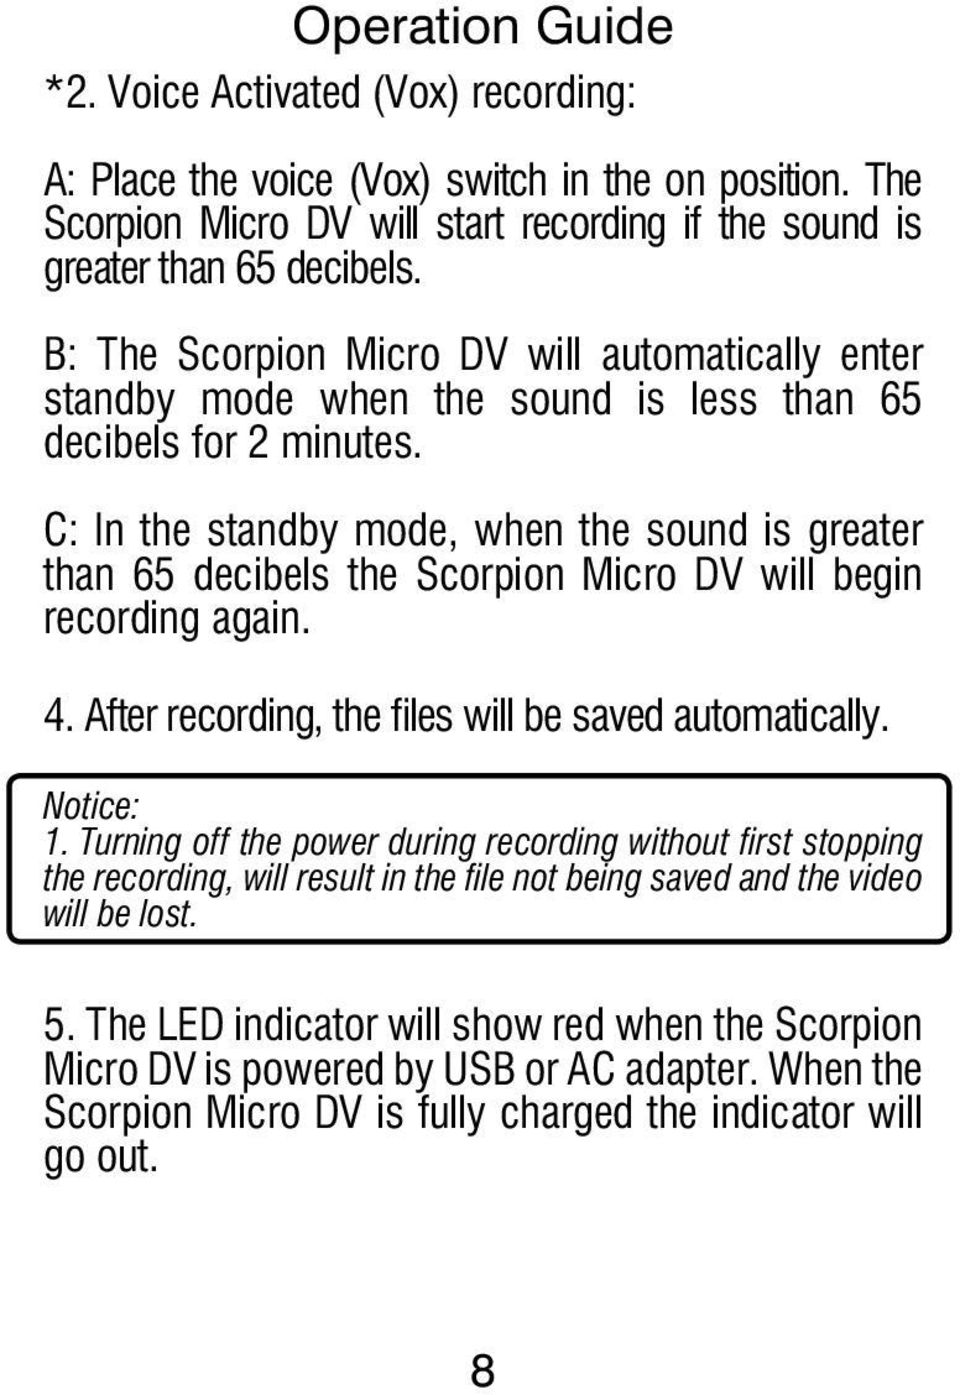 User Manual Pdf Voice Activated Switch Vox Kit C In The Standby Mode When Sound Is Greater Than 65 Decibels